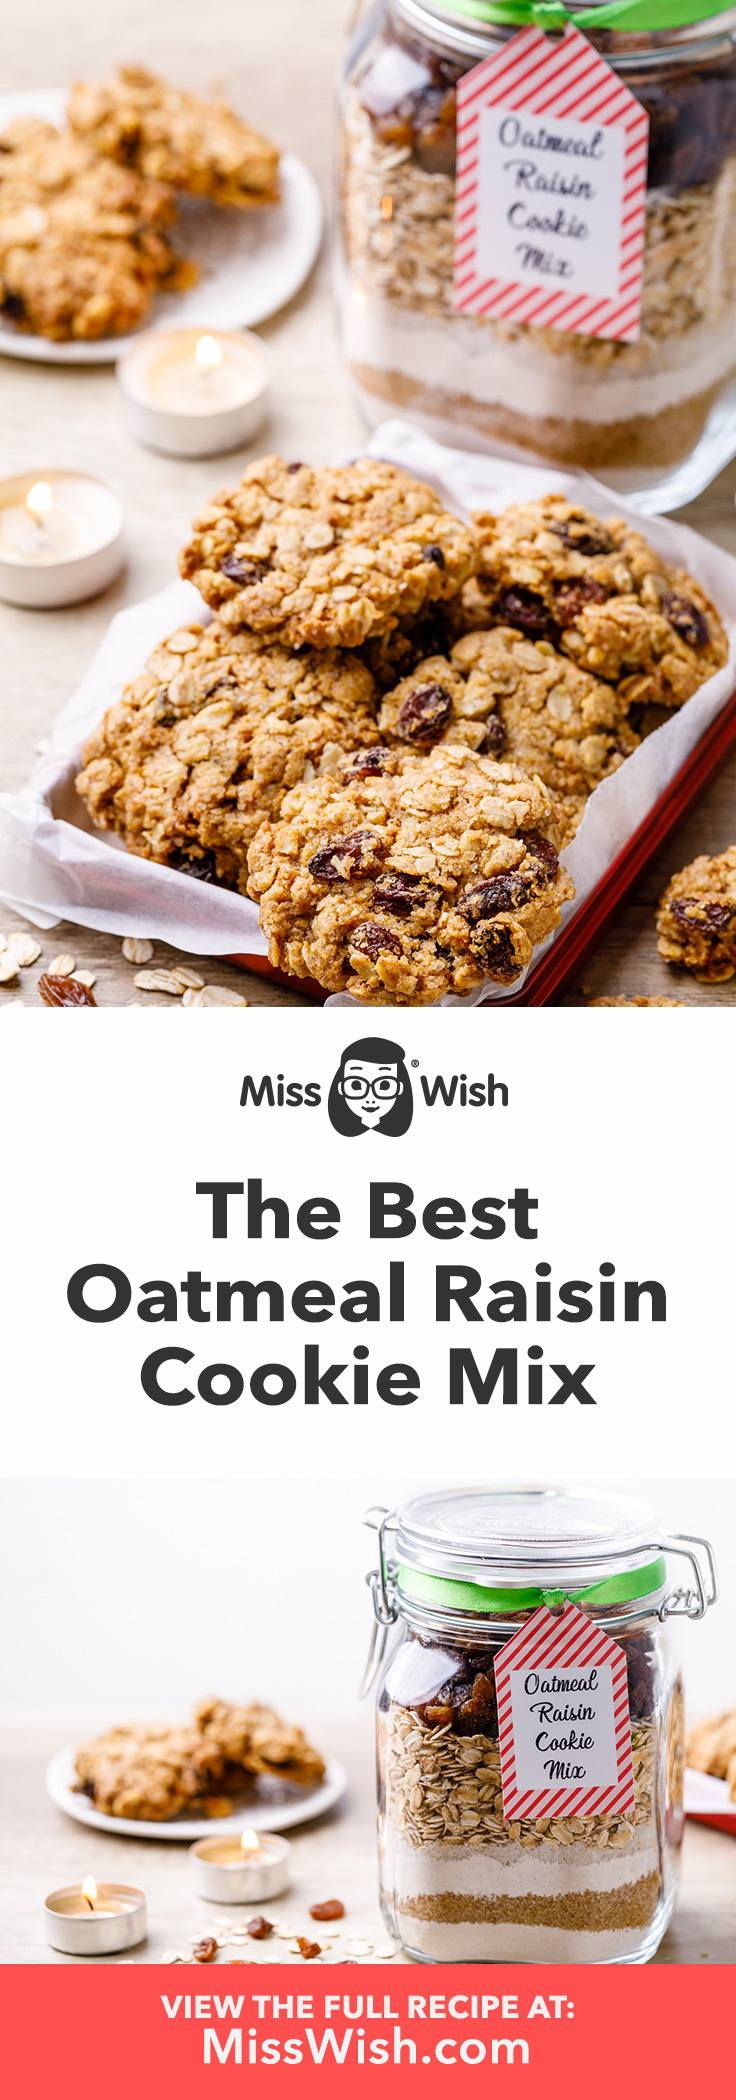 How to make the best oatmeal raisin cookie mix for quick and easy fresh baked oatmeal cookies,